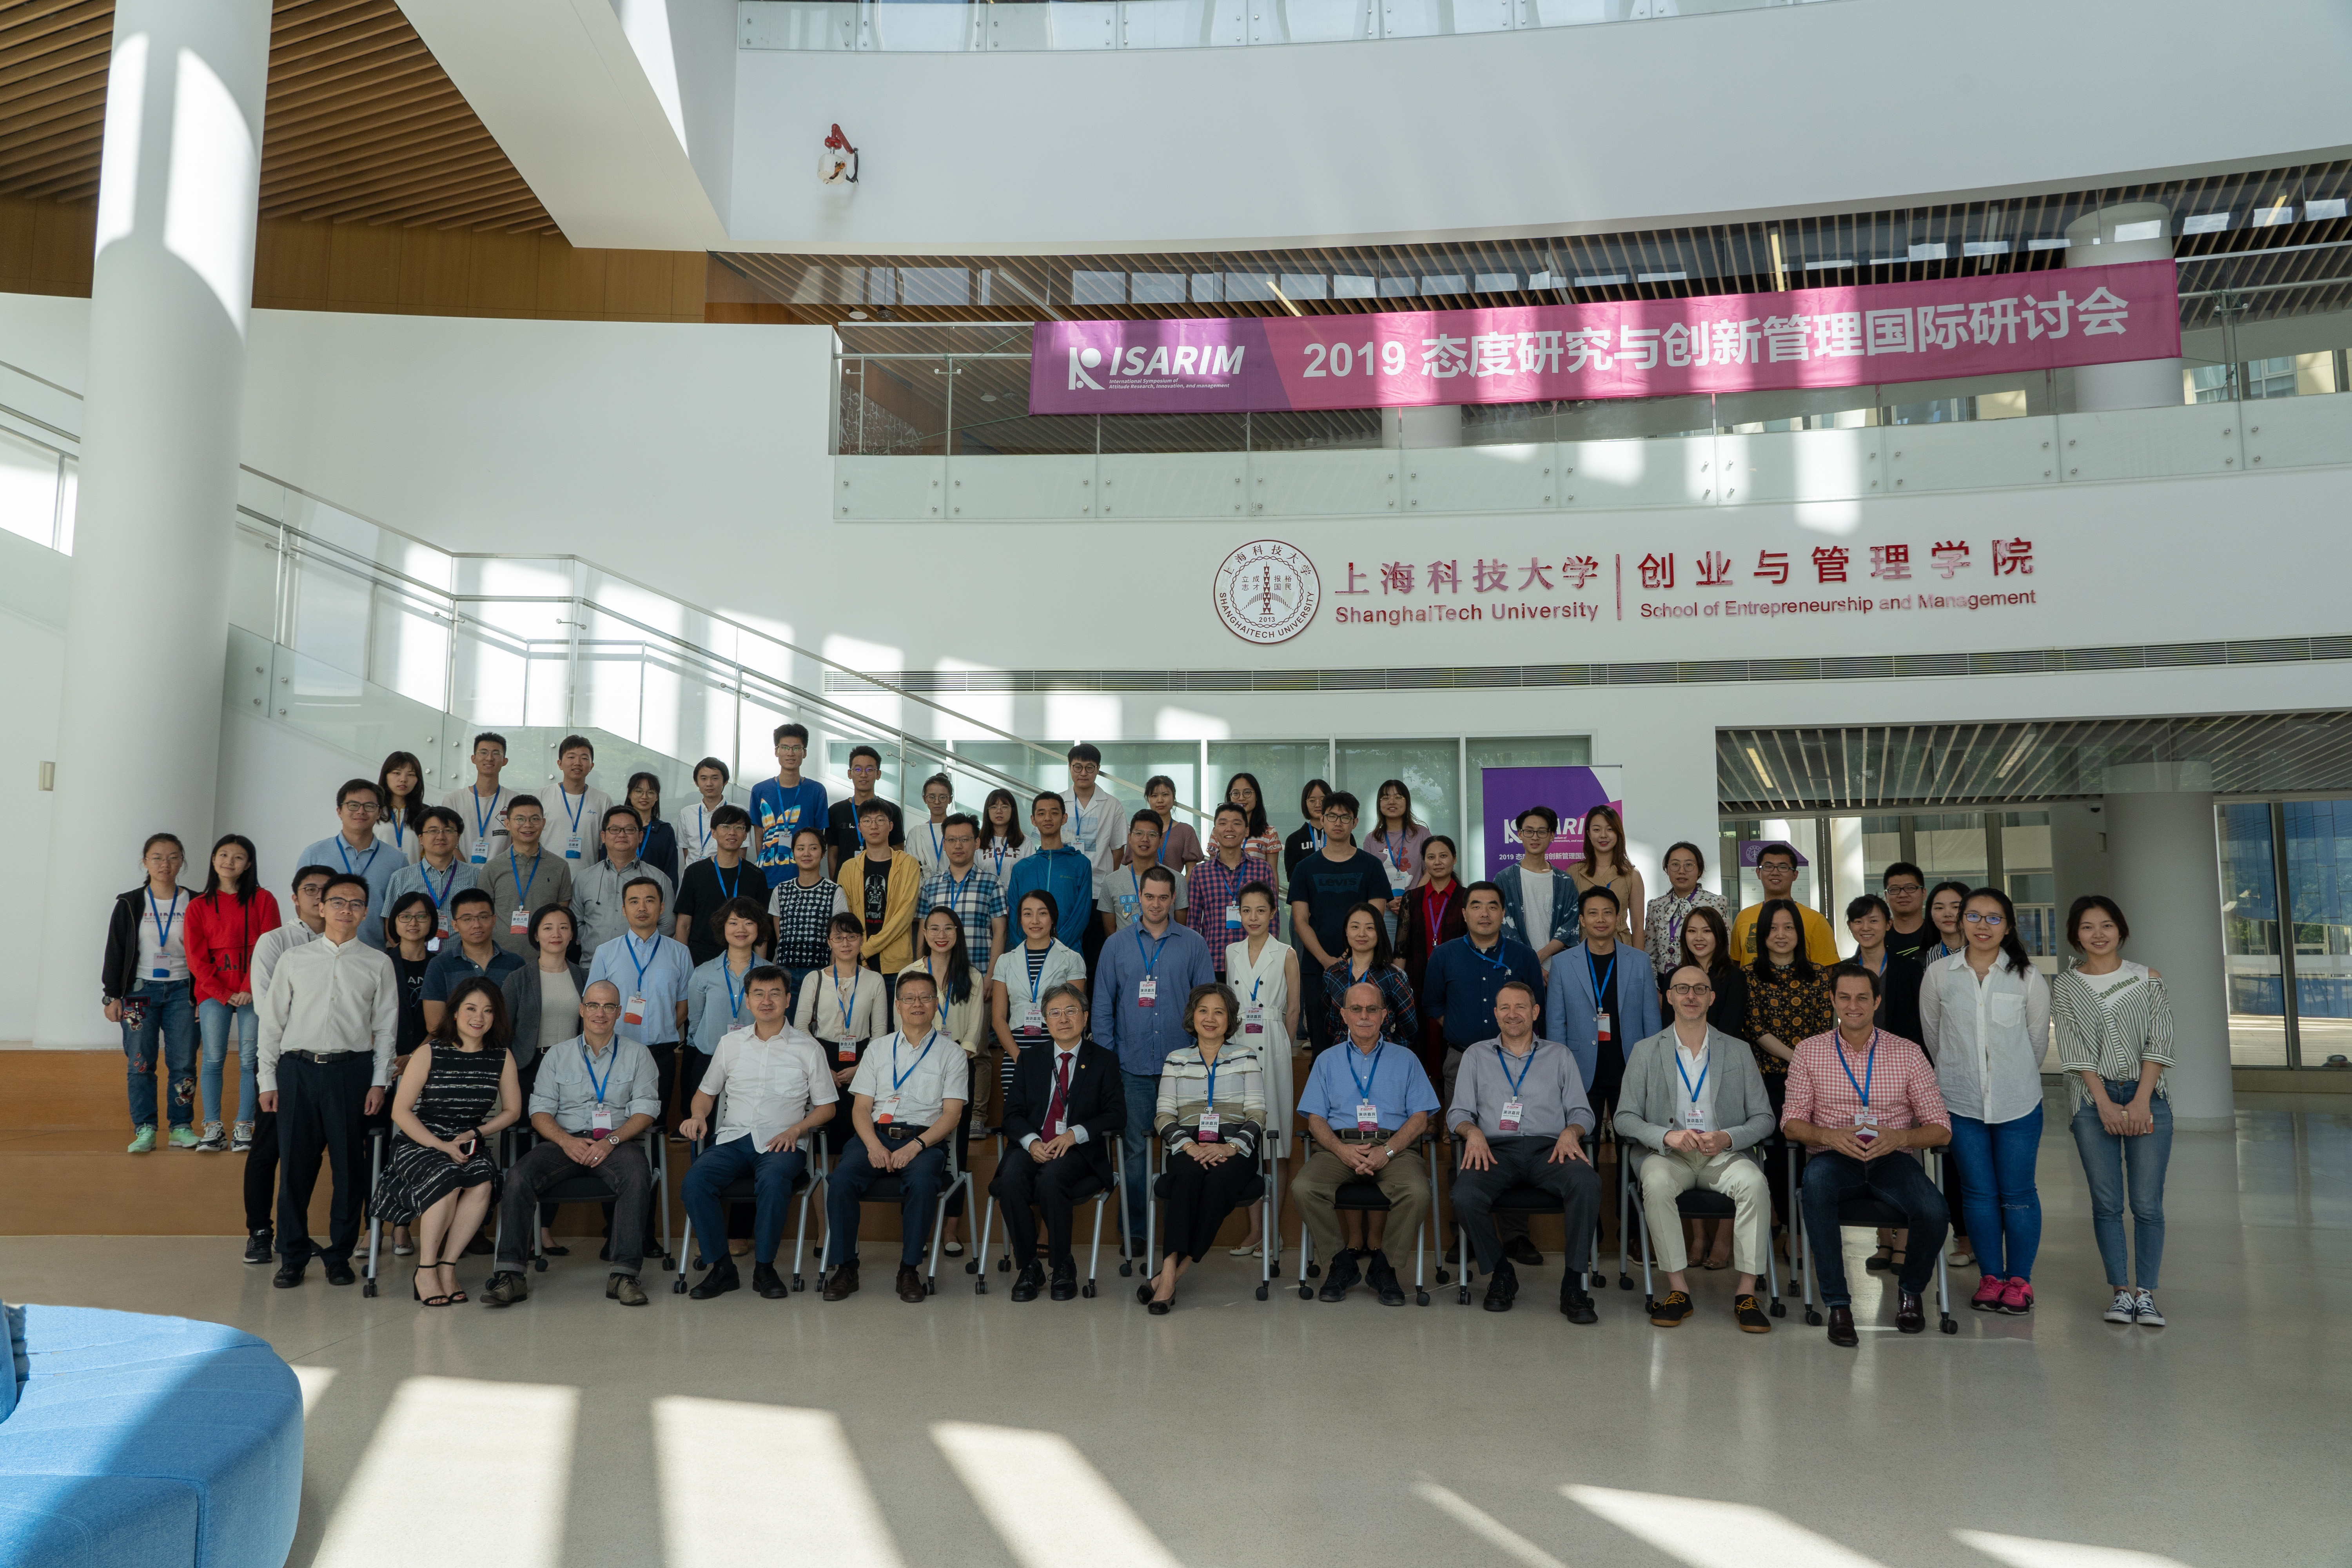 ISARIM 2019 was Held Successfully at ShanghaiTech University